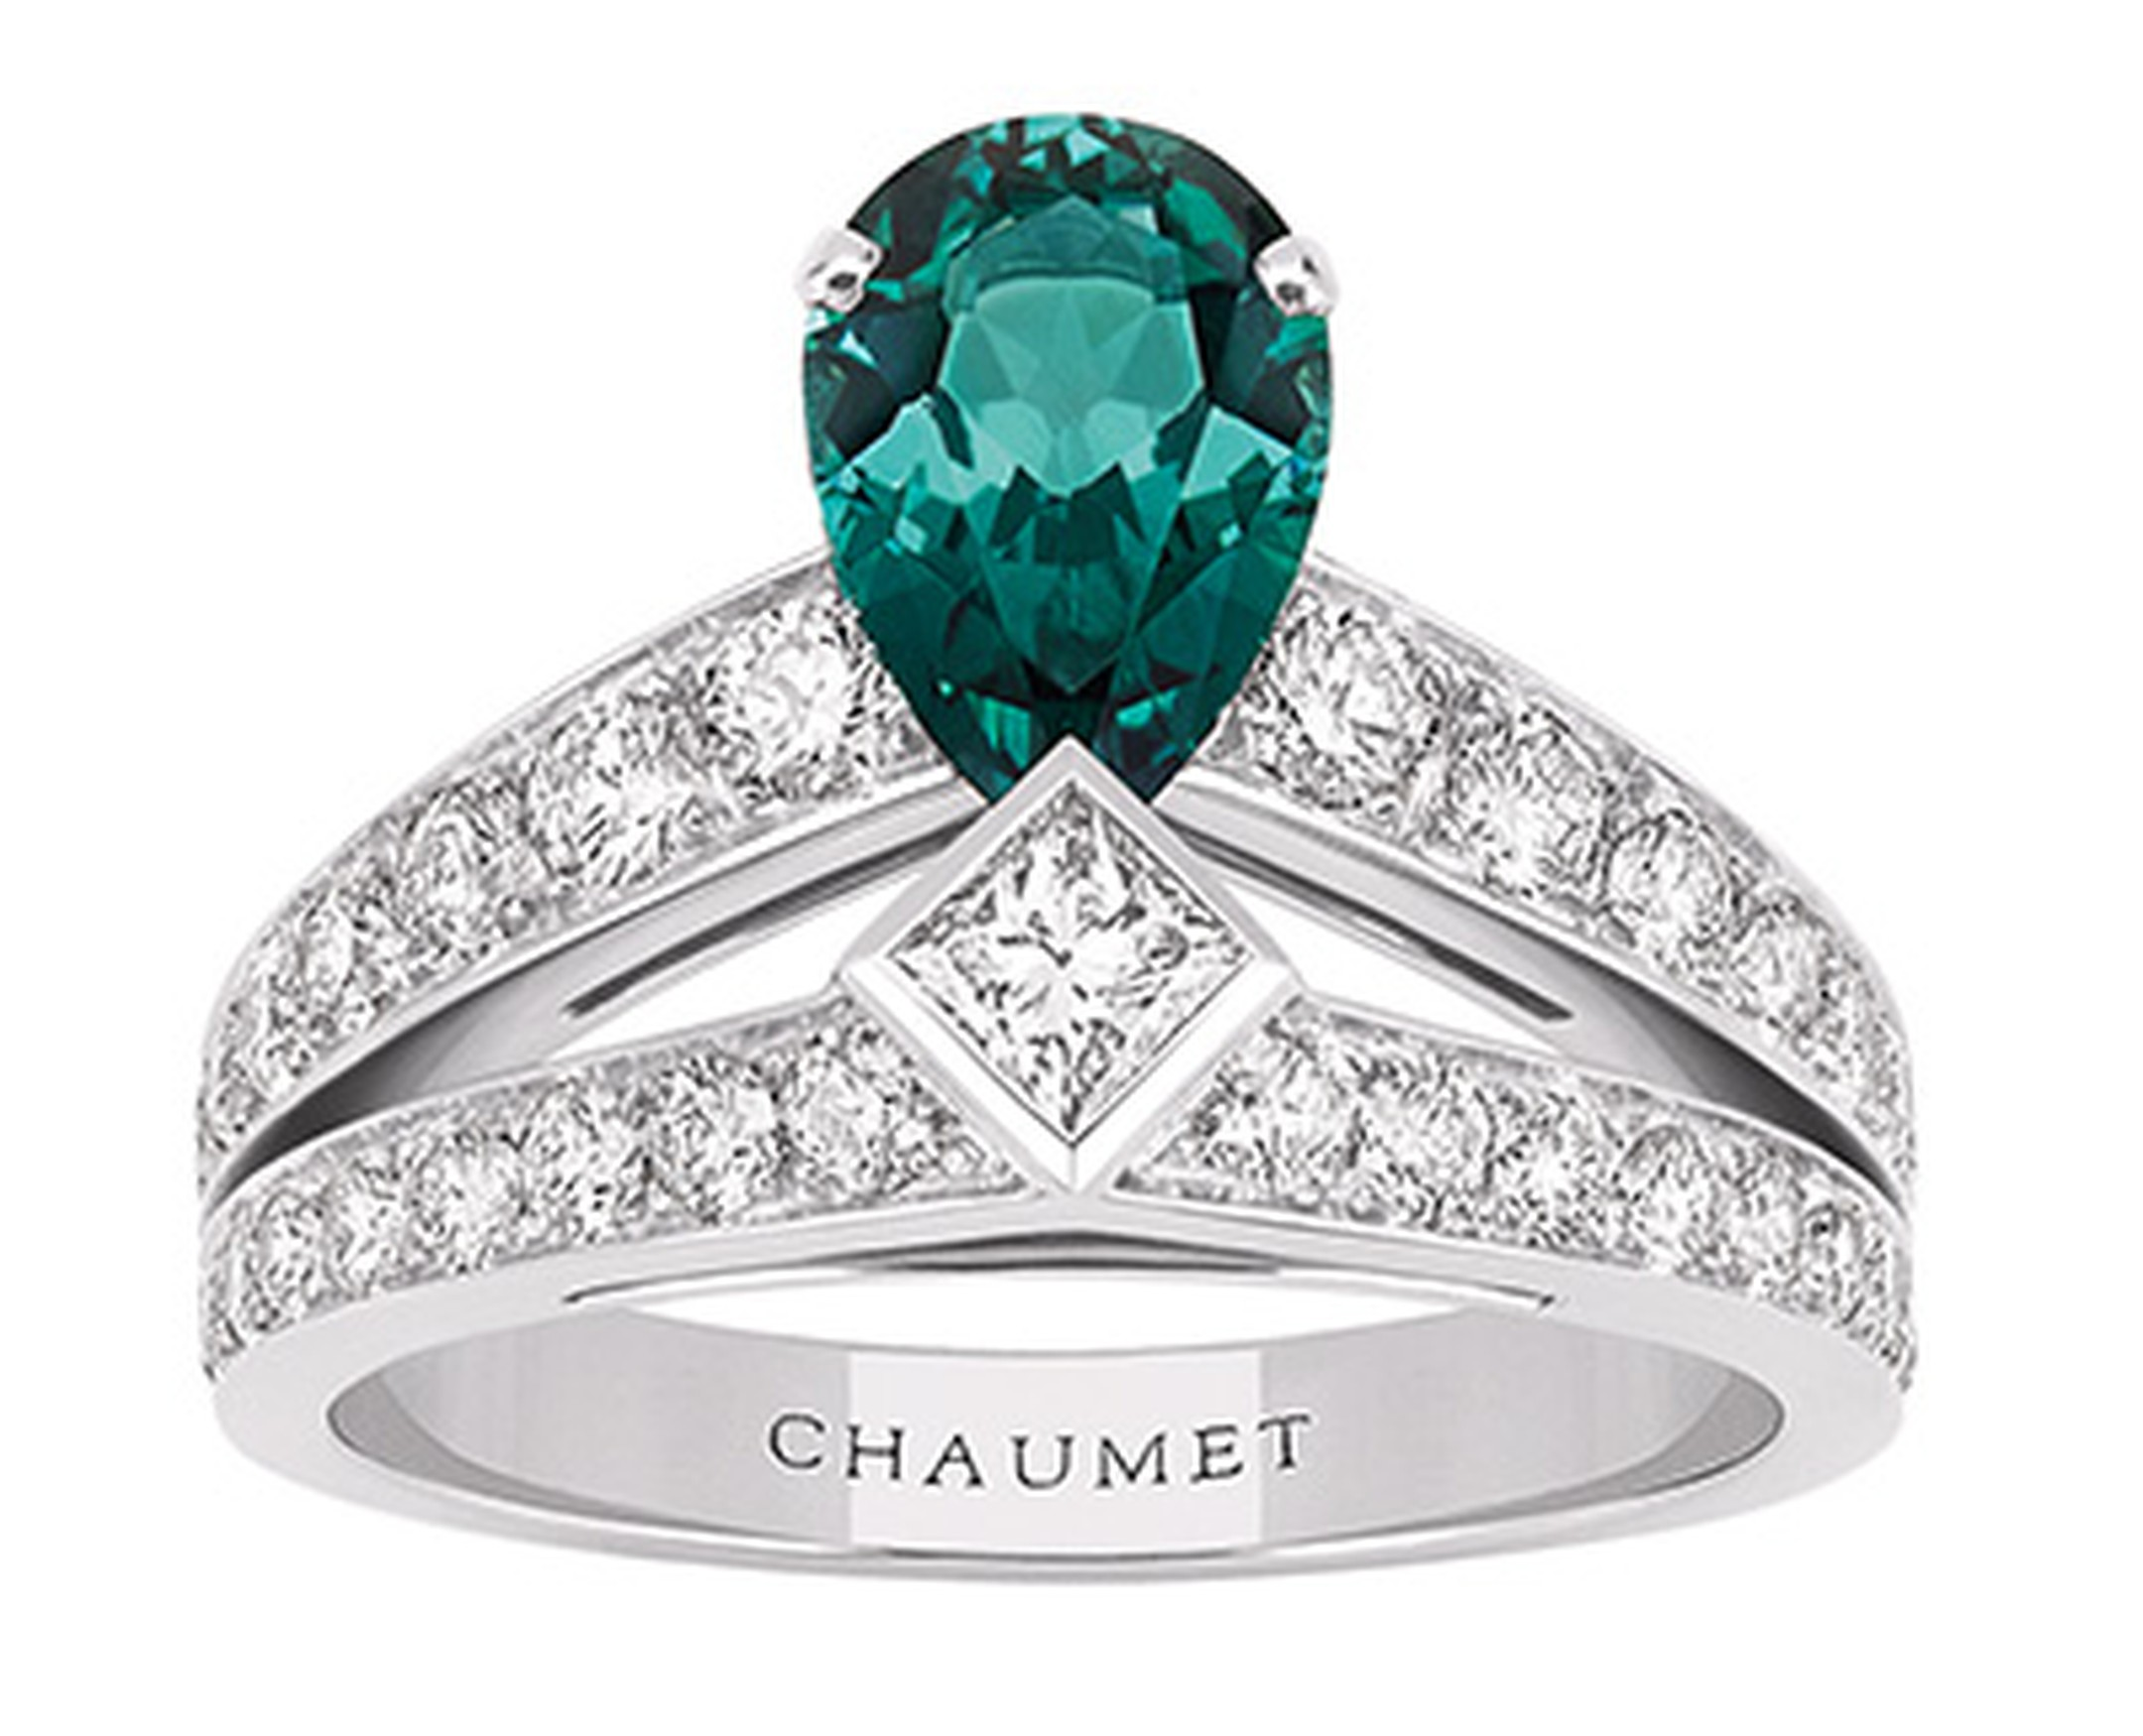 Chaumet Josephine Tiara ring with tourmaline